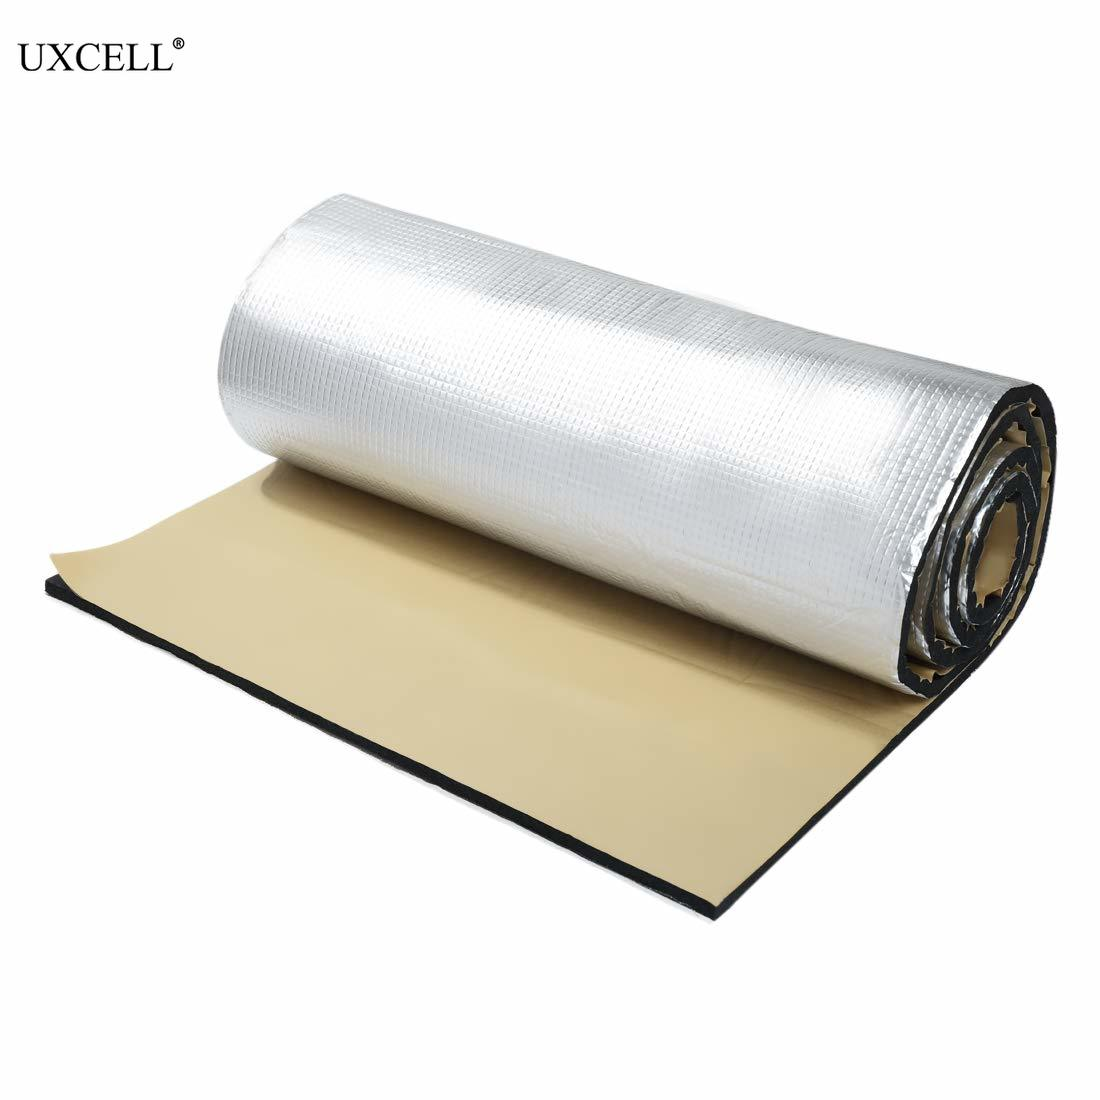 Uxcell 10mm Thick Alumina Fiber+ Muffler Cotton Car Automotive Heat Insulation Sound Deadener Road Noise Dampener Thermal Mat